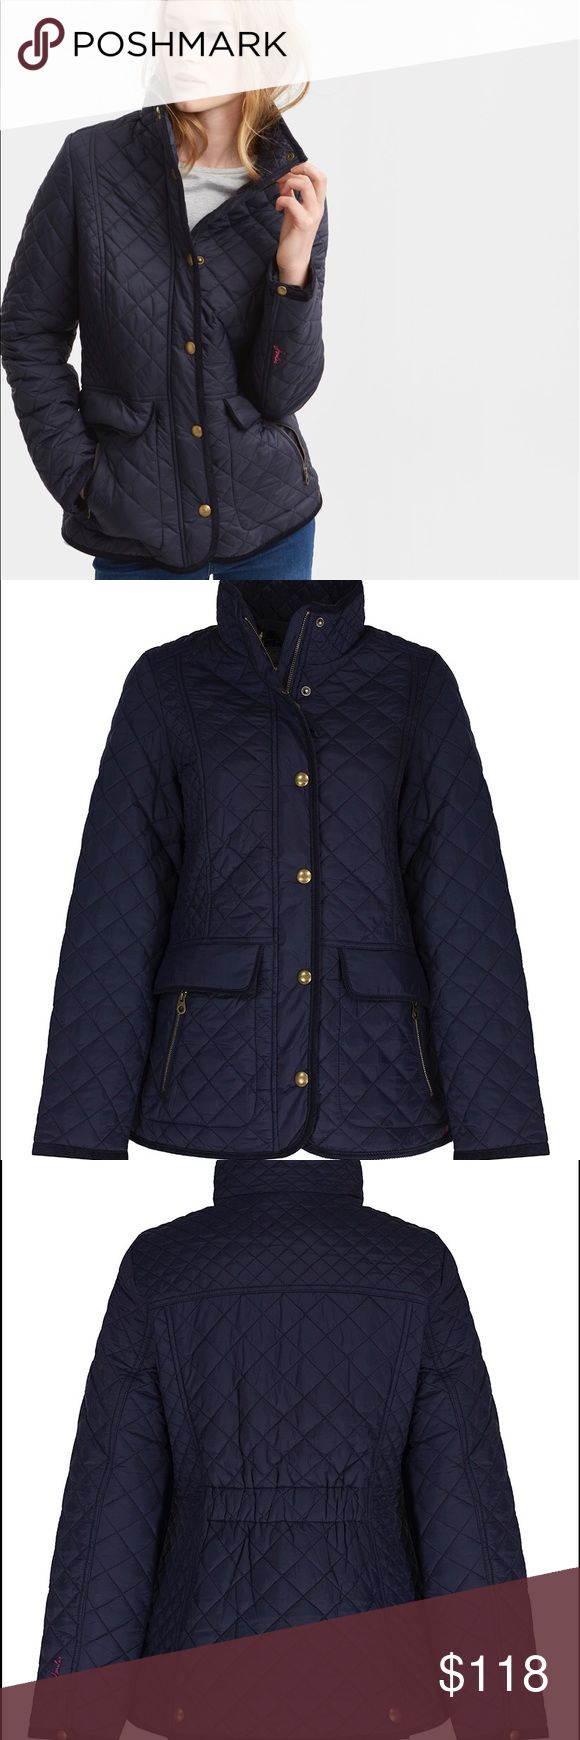 Joules Quilted Newdale Joules Quilted Newdale NWT!  Really lovely coat appropriate for New England fall temps...wish I could keep it but it's too large. Joules Jackets & Coats Puffers